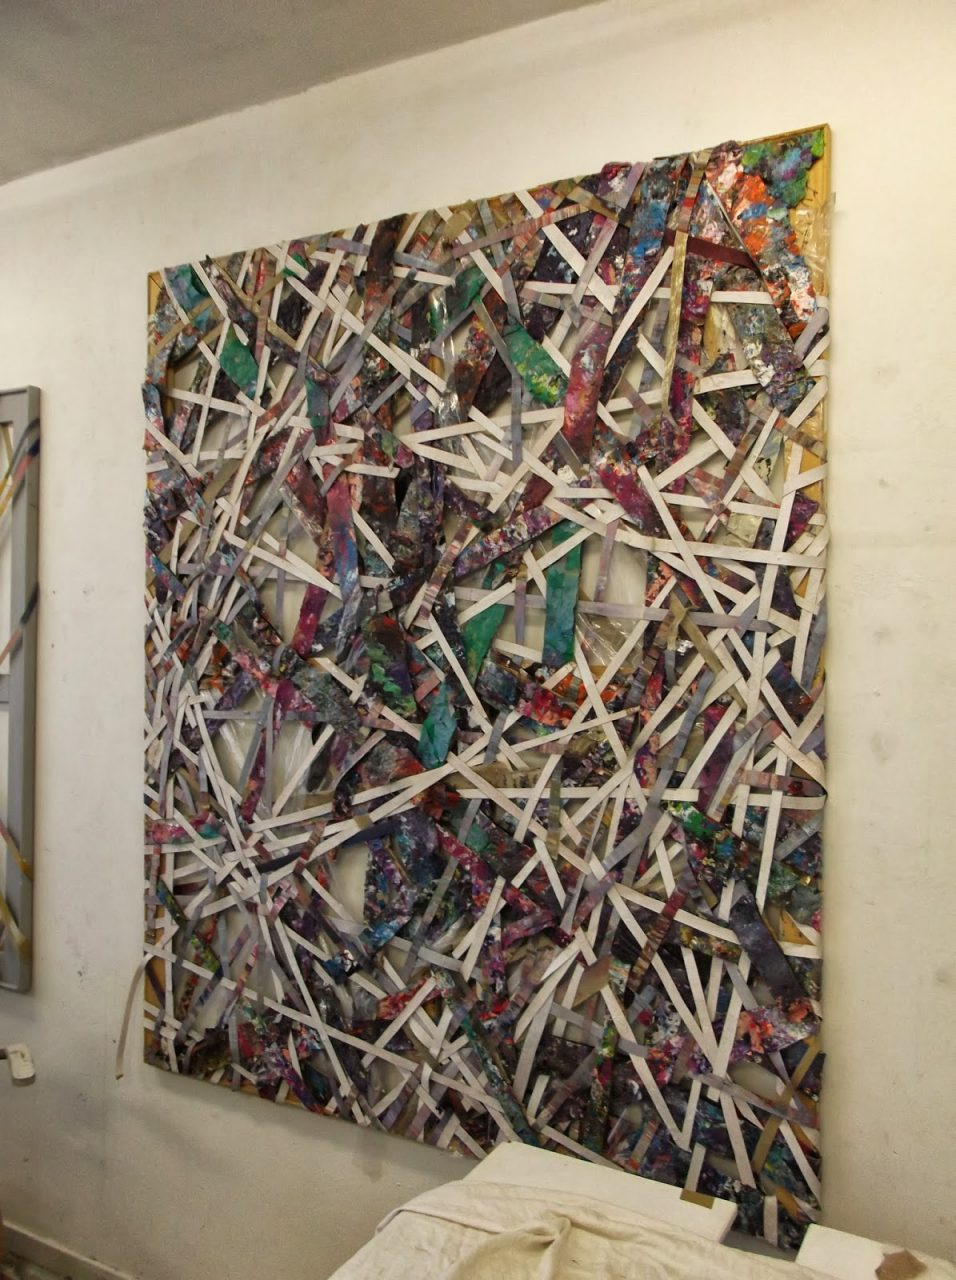 Crossover (2013), oil, acrylic, plastic, fabric and medium on wooden stretcher, 180 x 150 cm